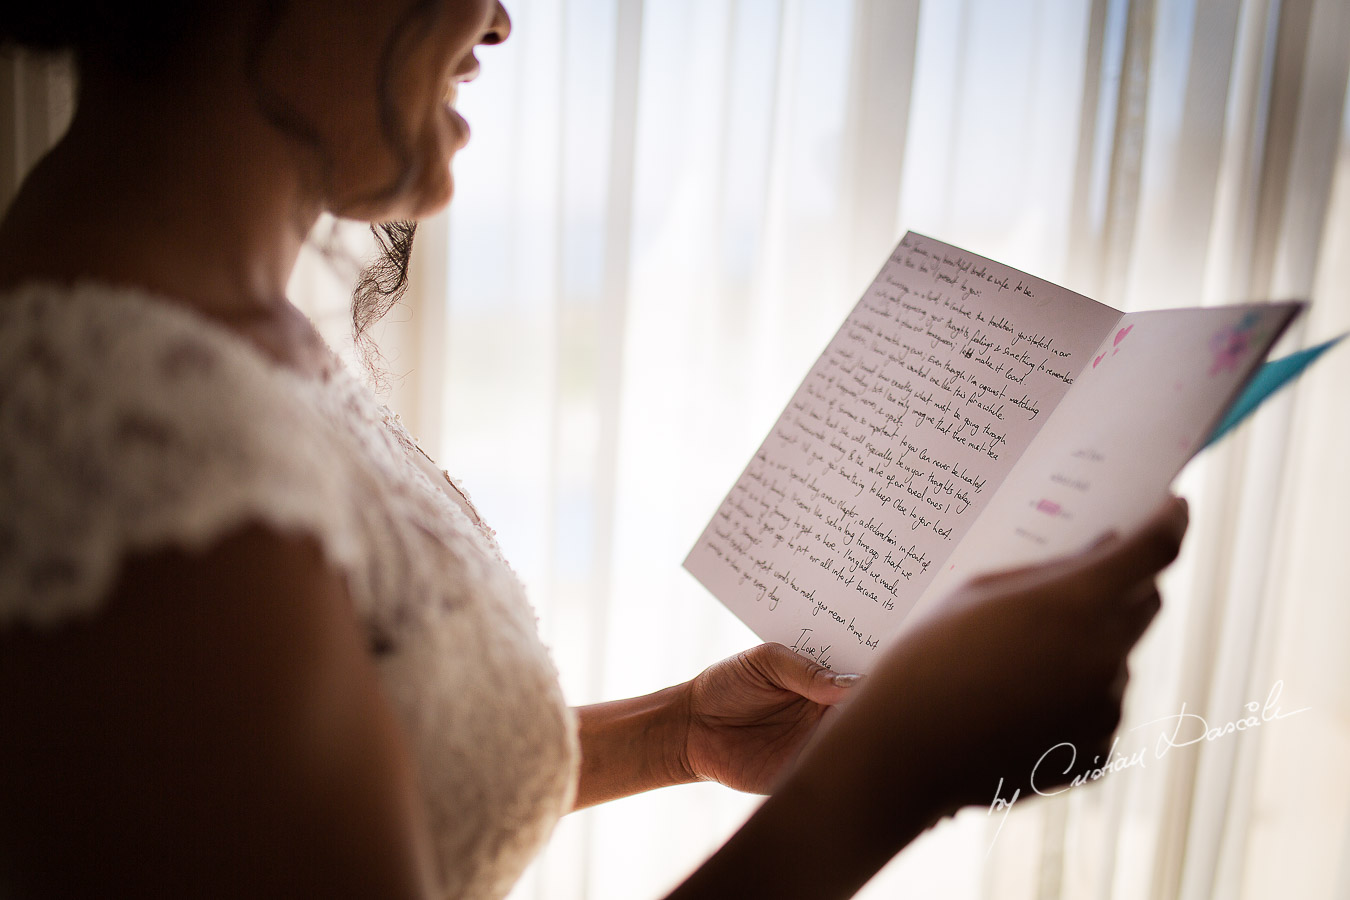 Genuine moments when the bride is reading her letter from the groom captured at a wedding at Minthis Hills in Cyprus, by Cristian Dascalu.